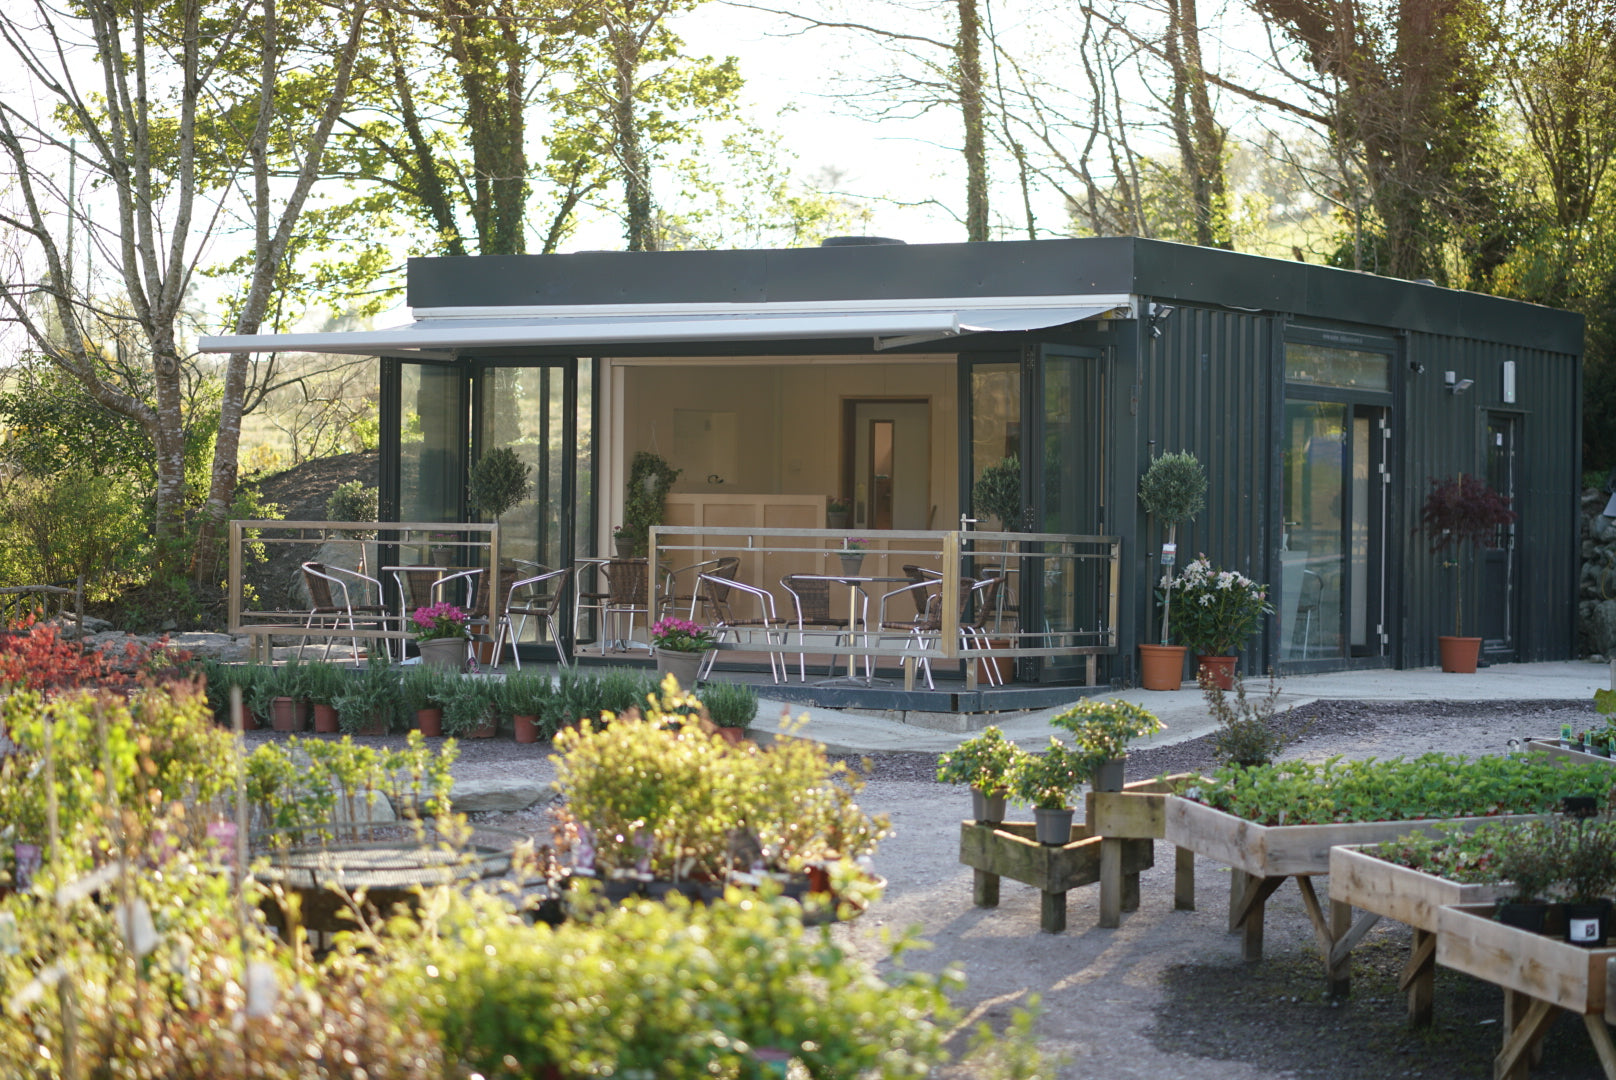 The Coffee Bee cafe at Future Forests is surrounded by stunning plants and trees lit by evening light.